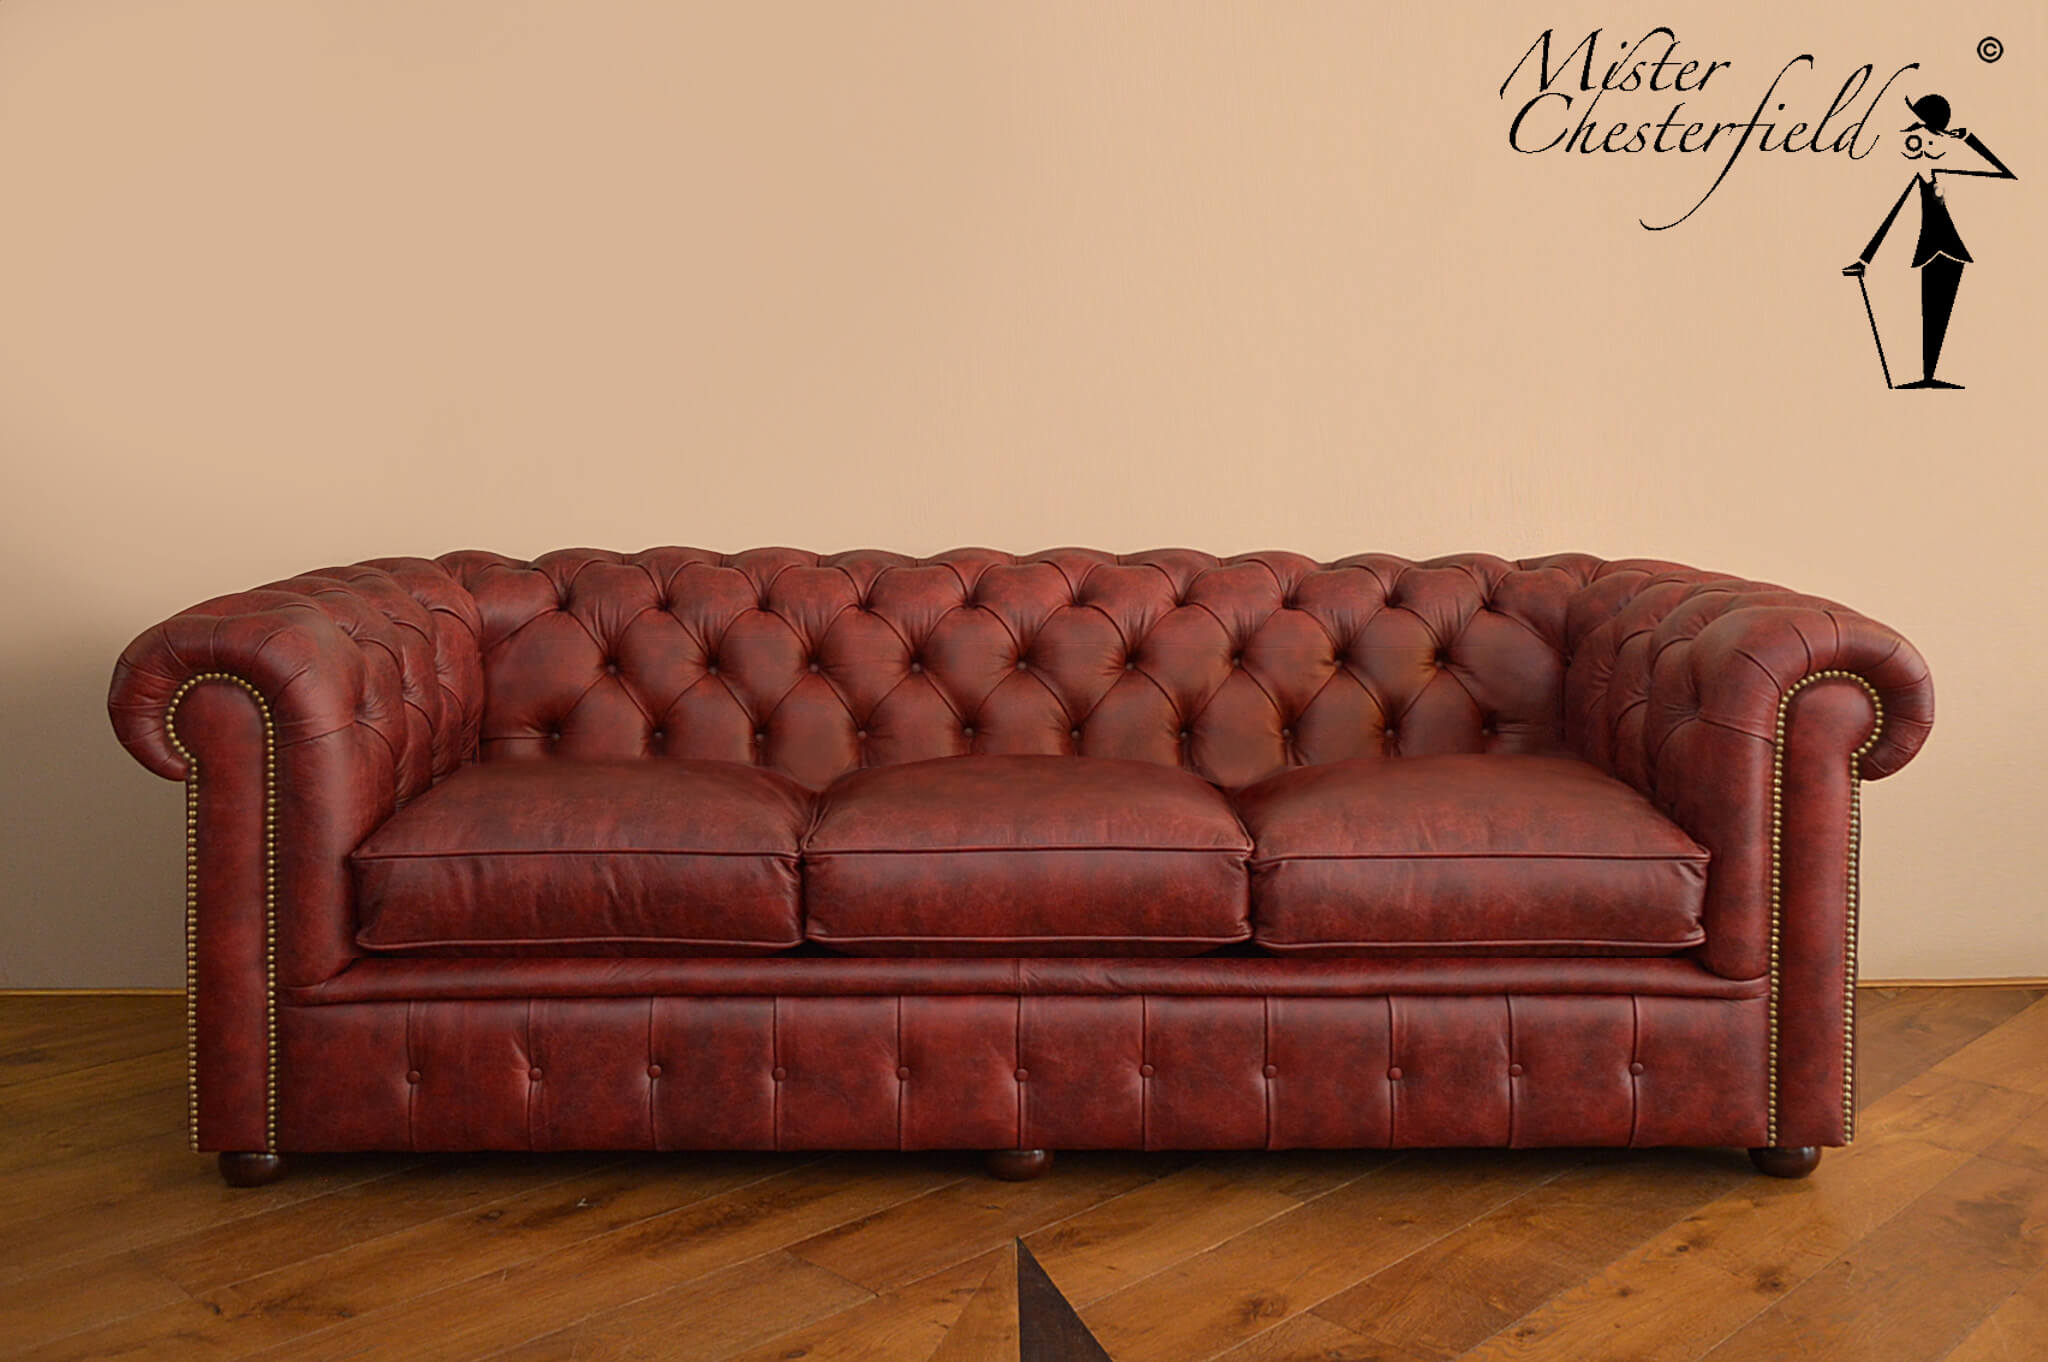 Vintage Red Chesterfield Sofa 225cm Directly Available Mister